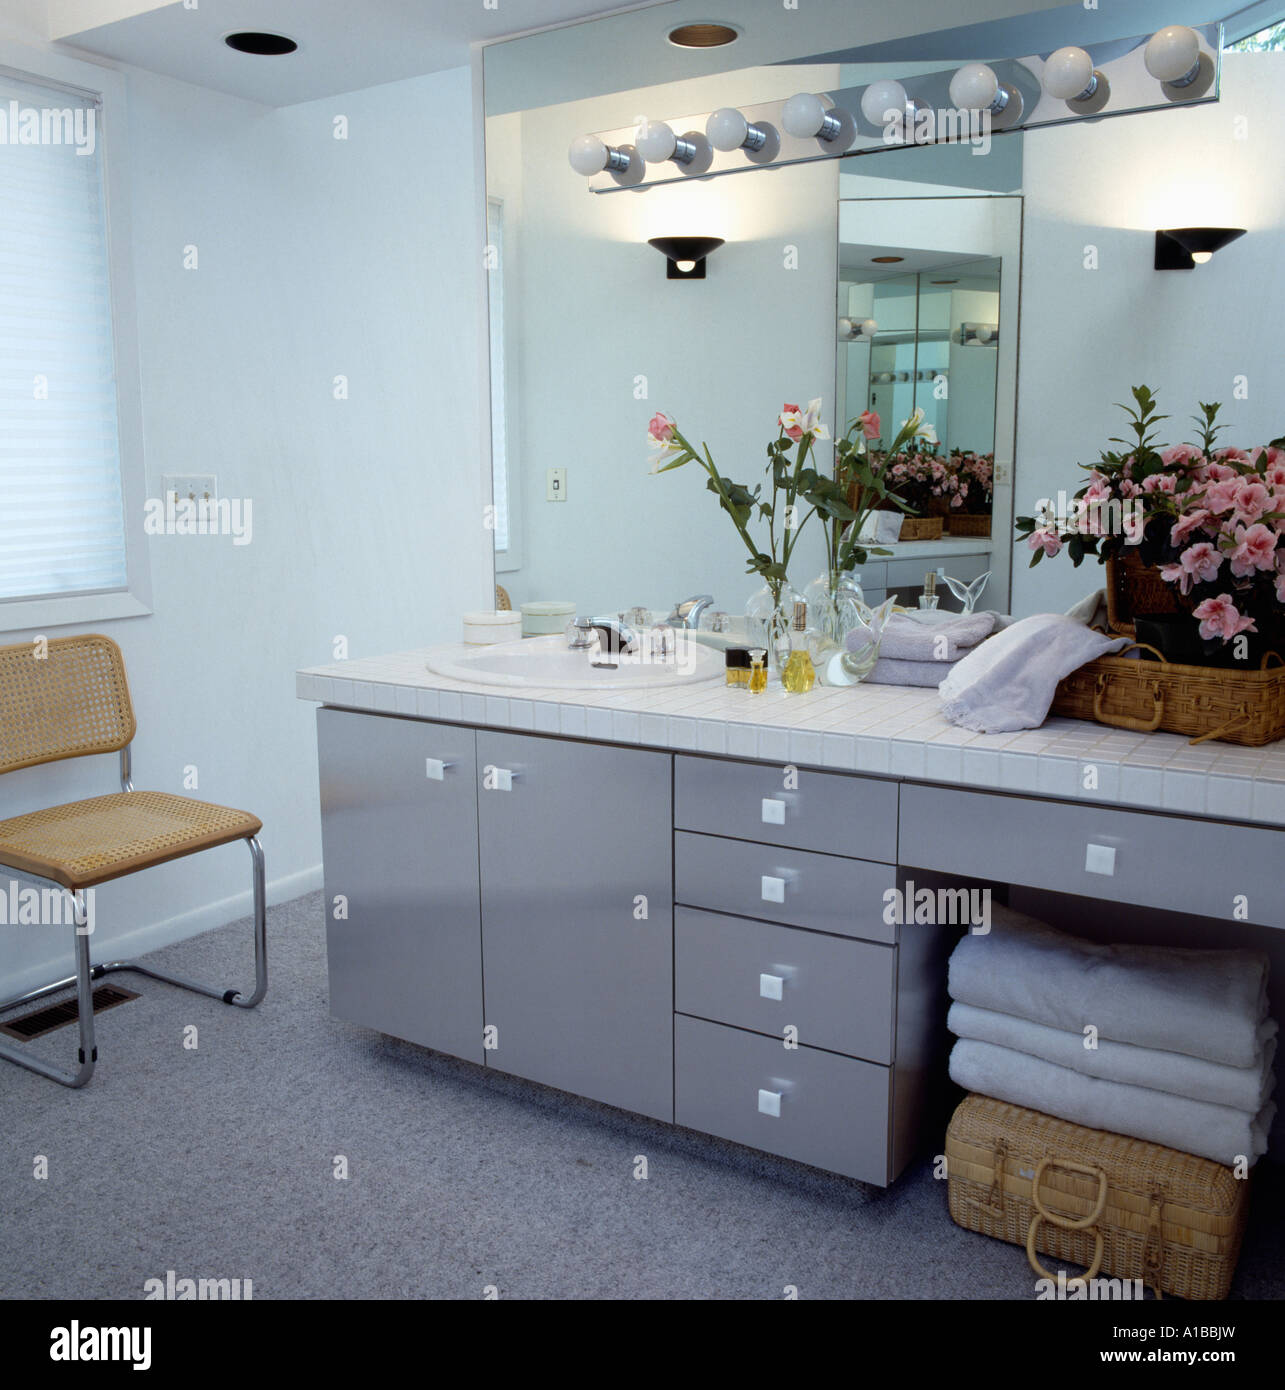 Built-in vanity unit with light-bulbs on mirror - Stock Image